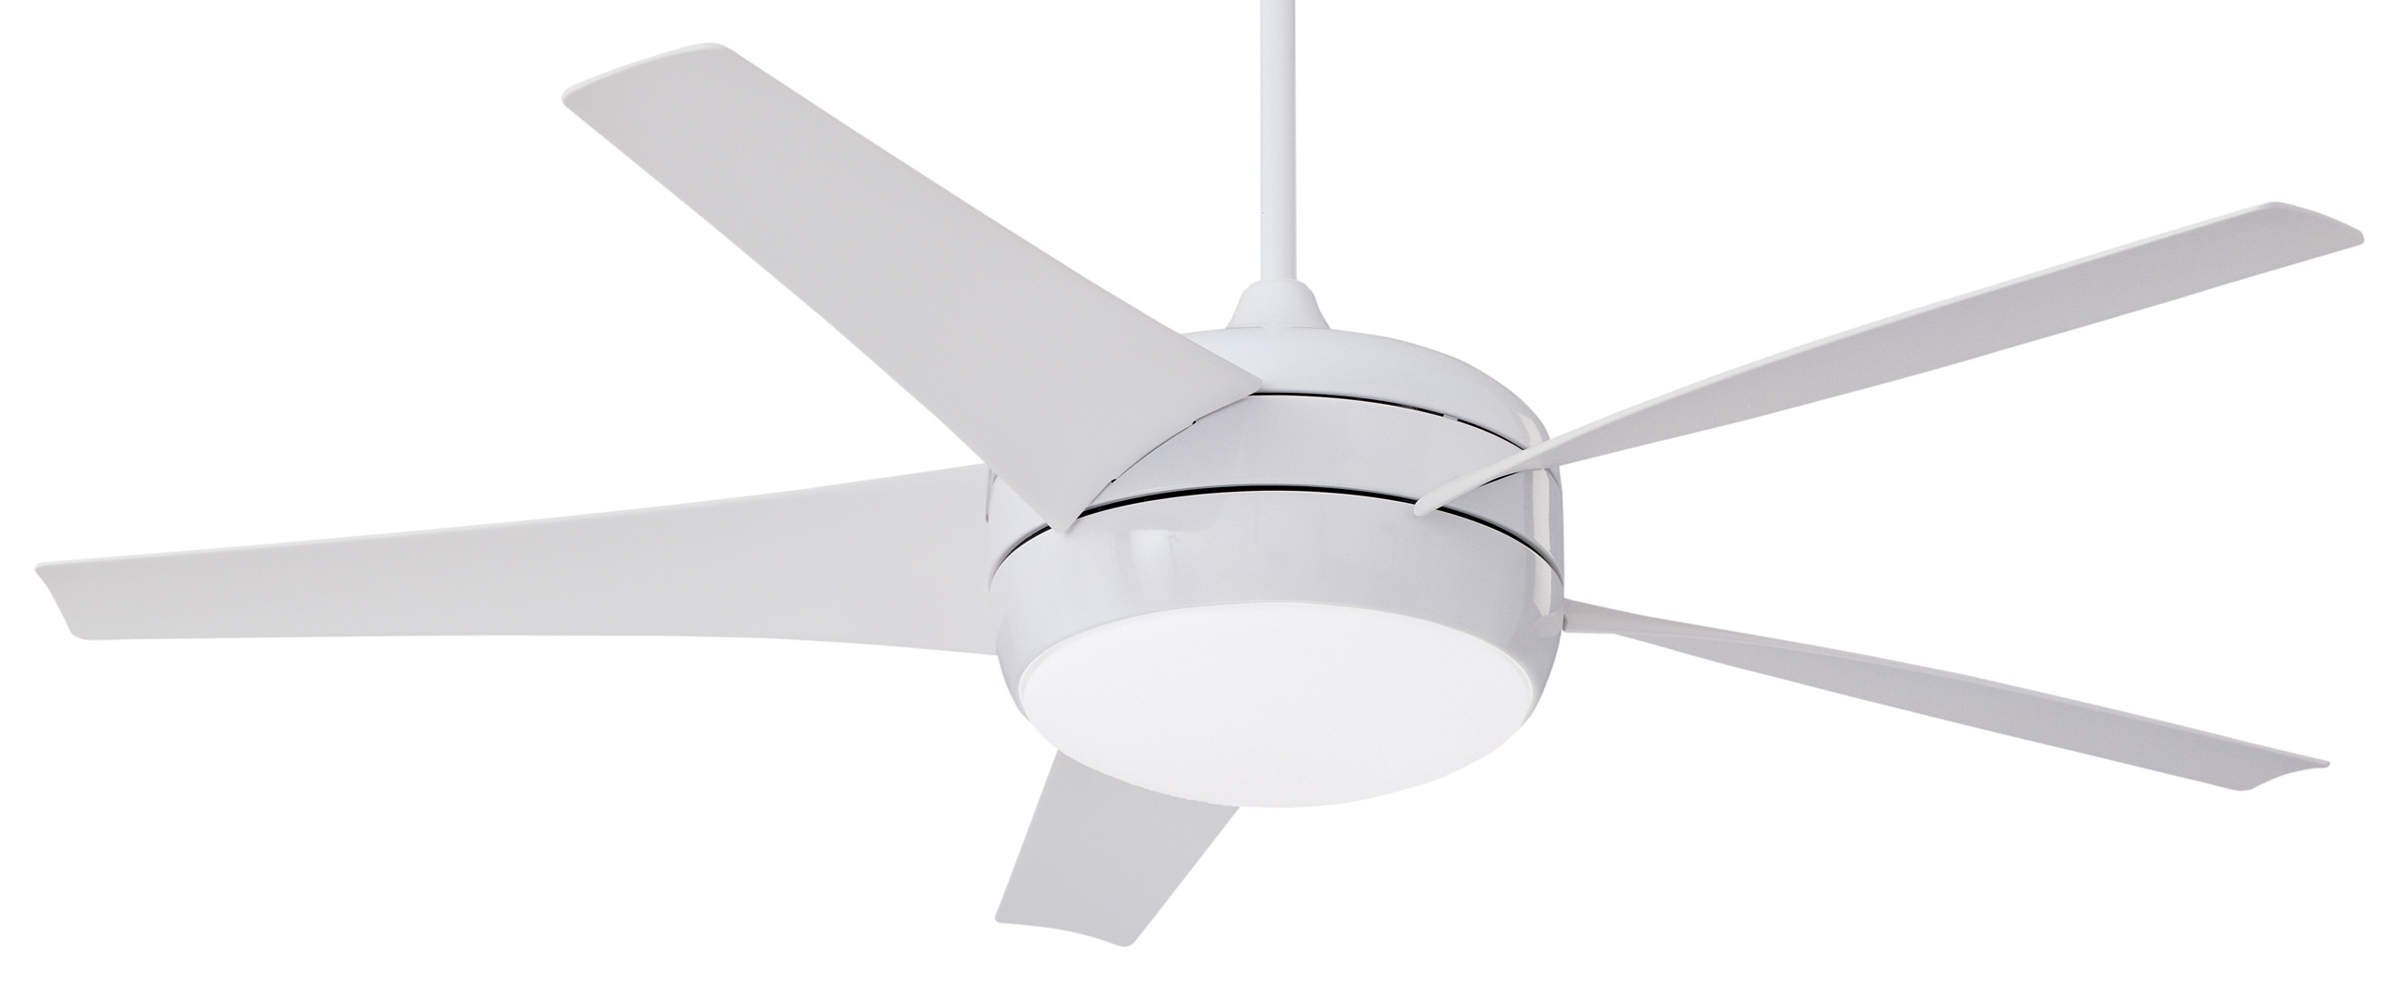 Most Popular Modern Outdoor Ceiling Fans With Lights Throughout Emerson Midway Eco Dc Motor Ceiling Fan Cfww In Gloss White With (View 18 of 20)